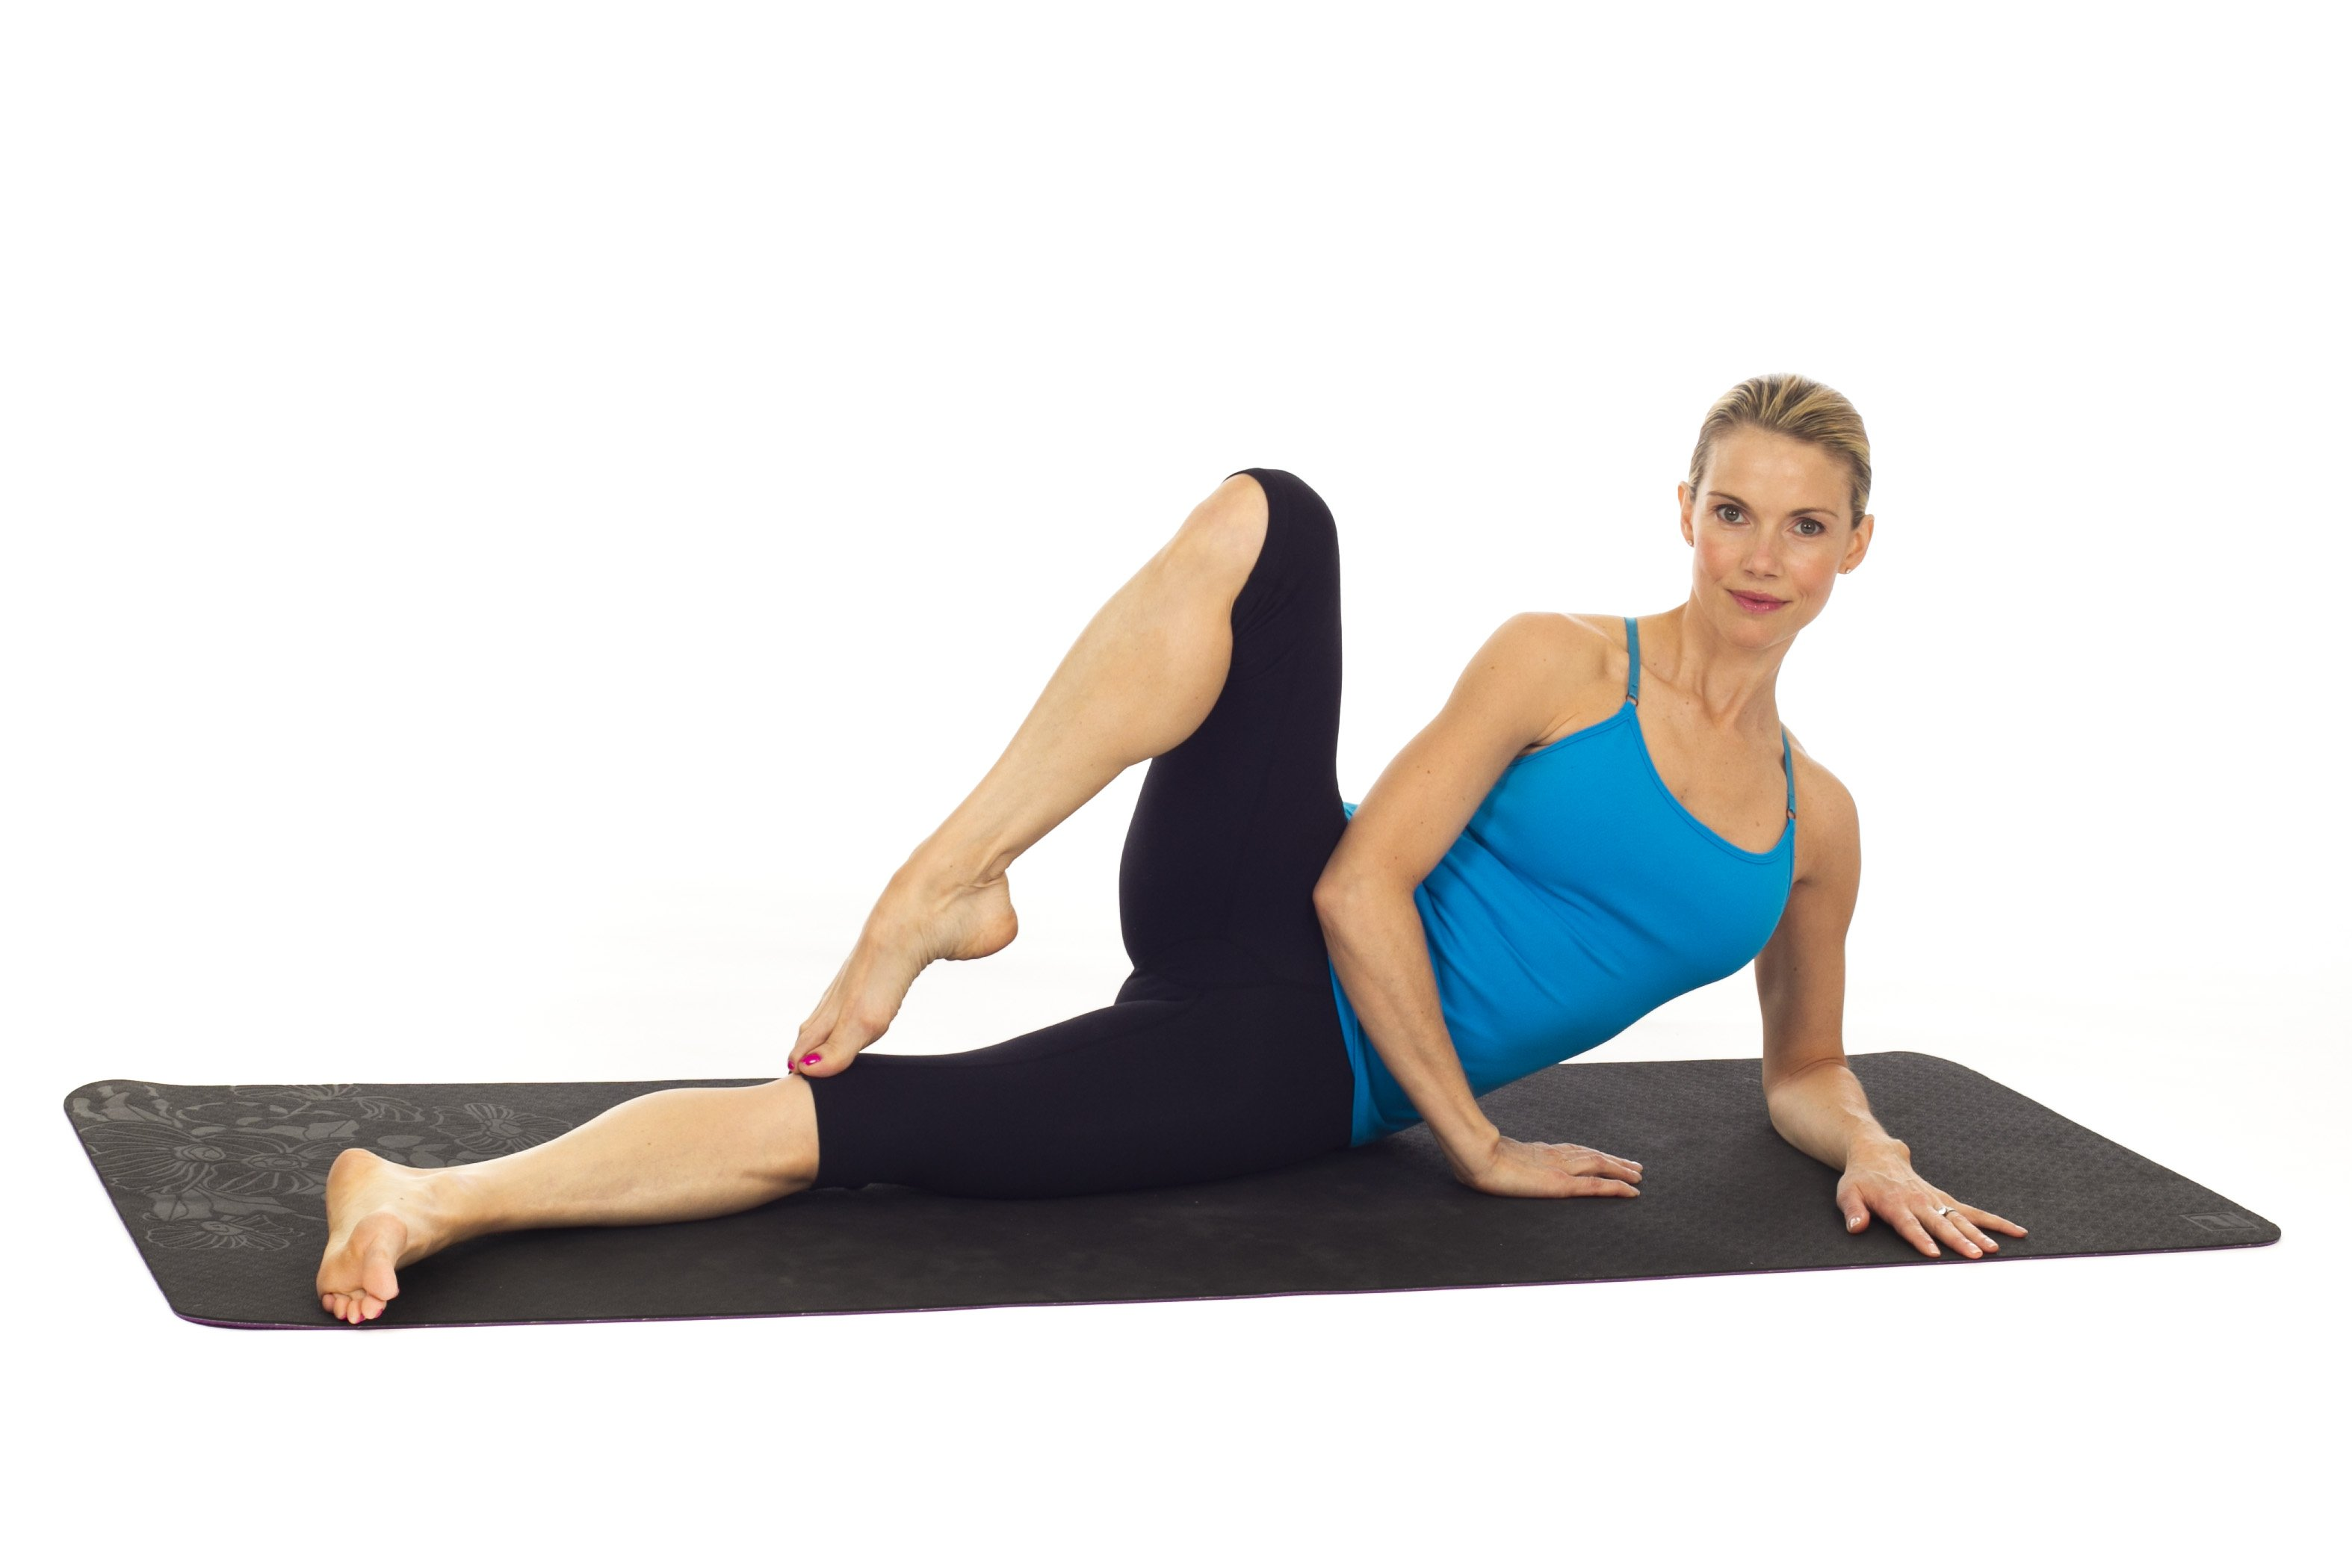 Caveman Yoga : Week's worth of workouts! tuesday: legs & butt kristin mcgee